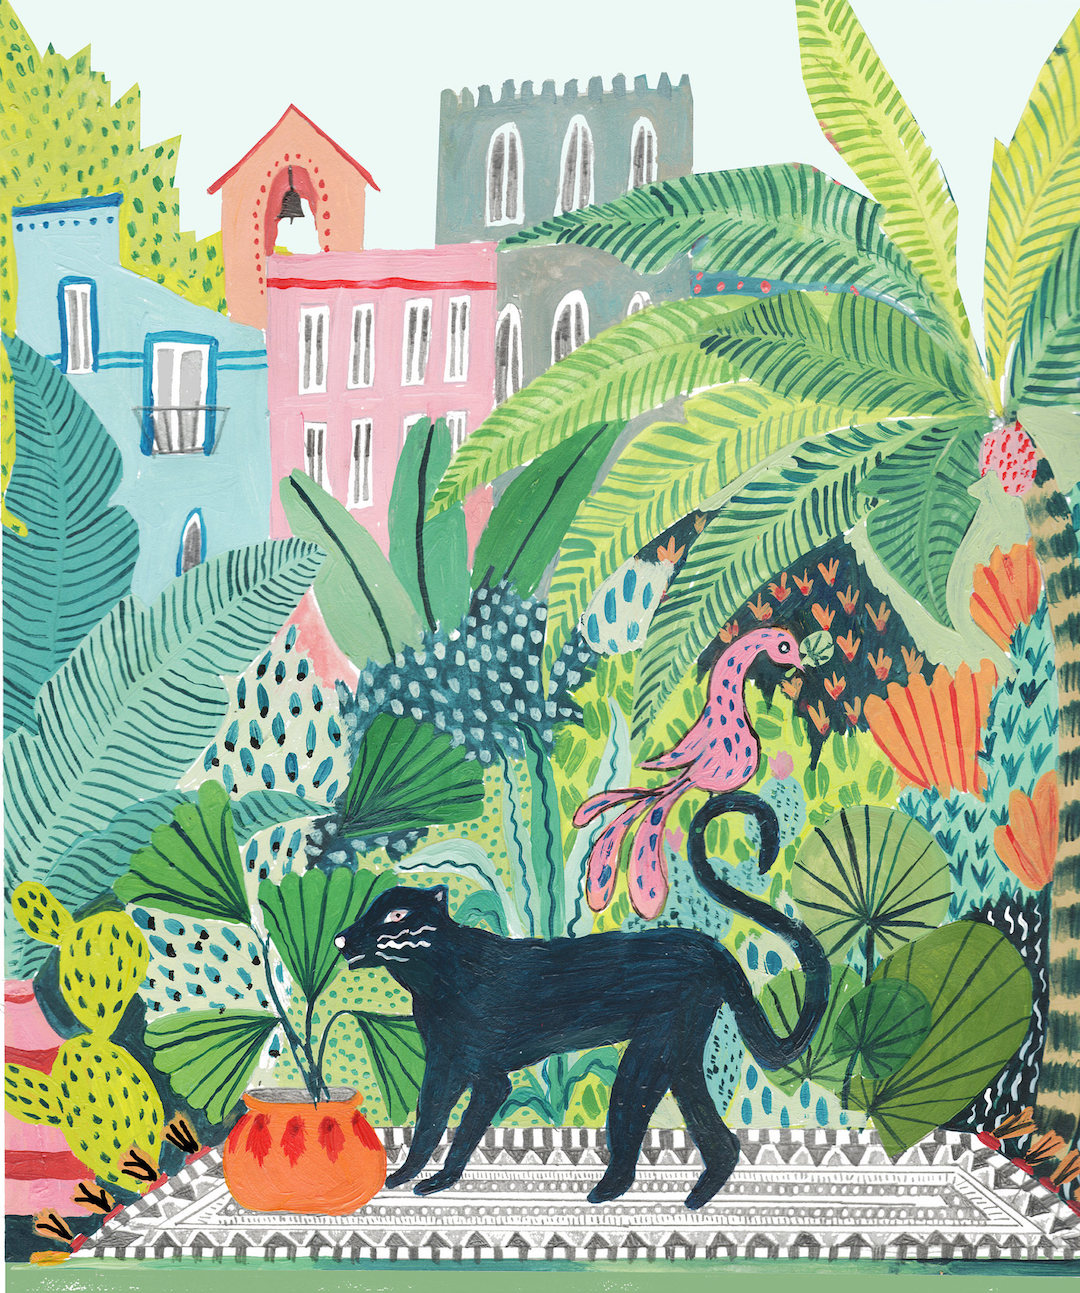 Jungle illustrations by Amber Davenport